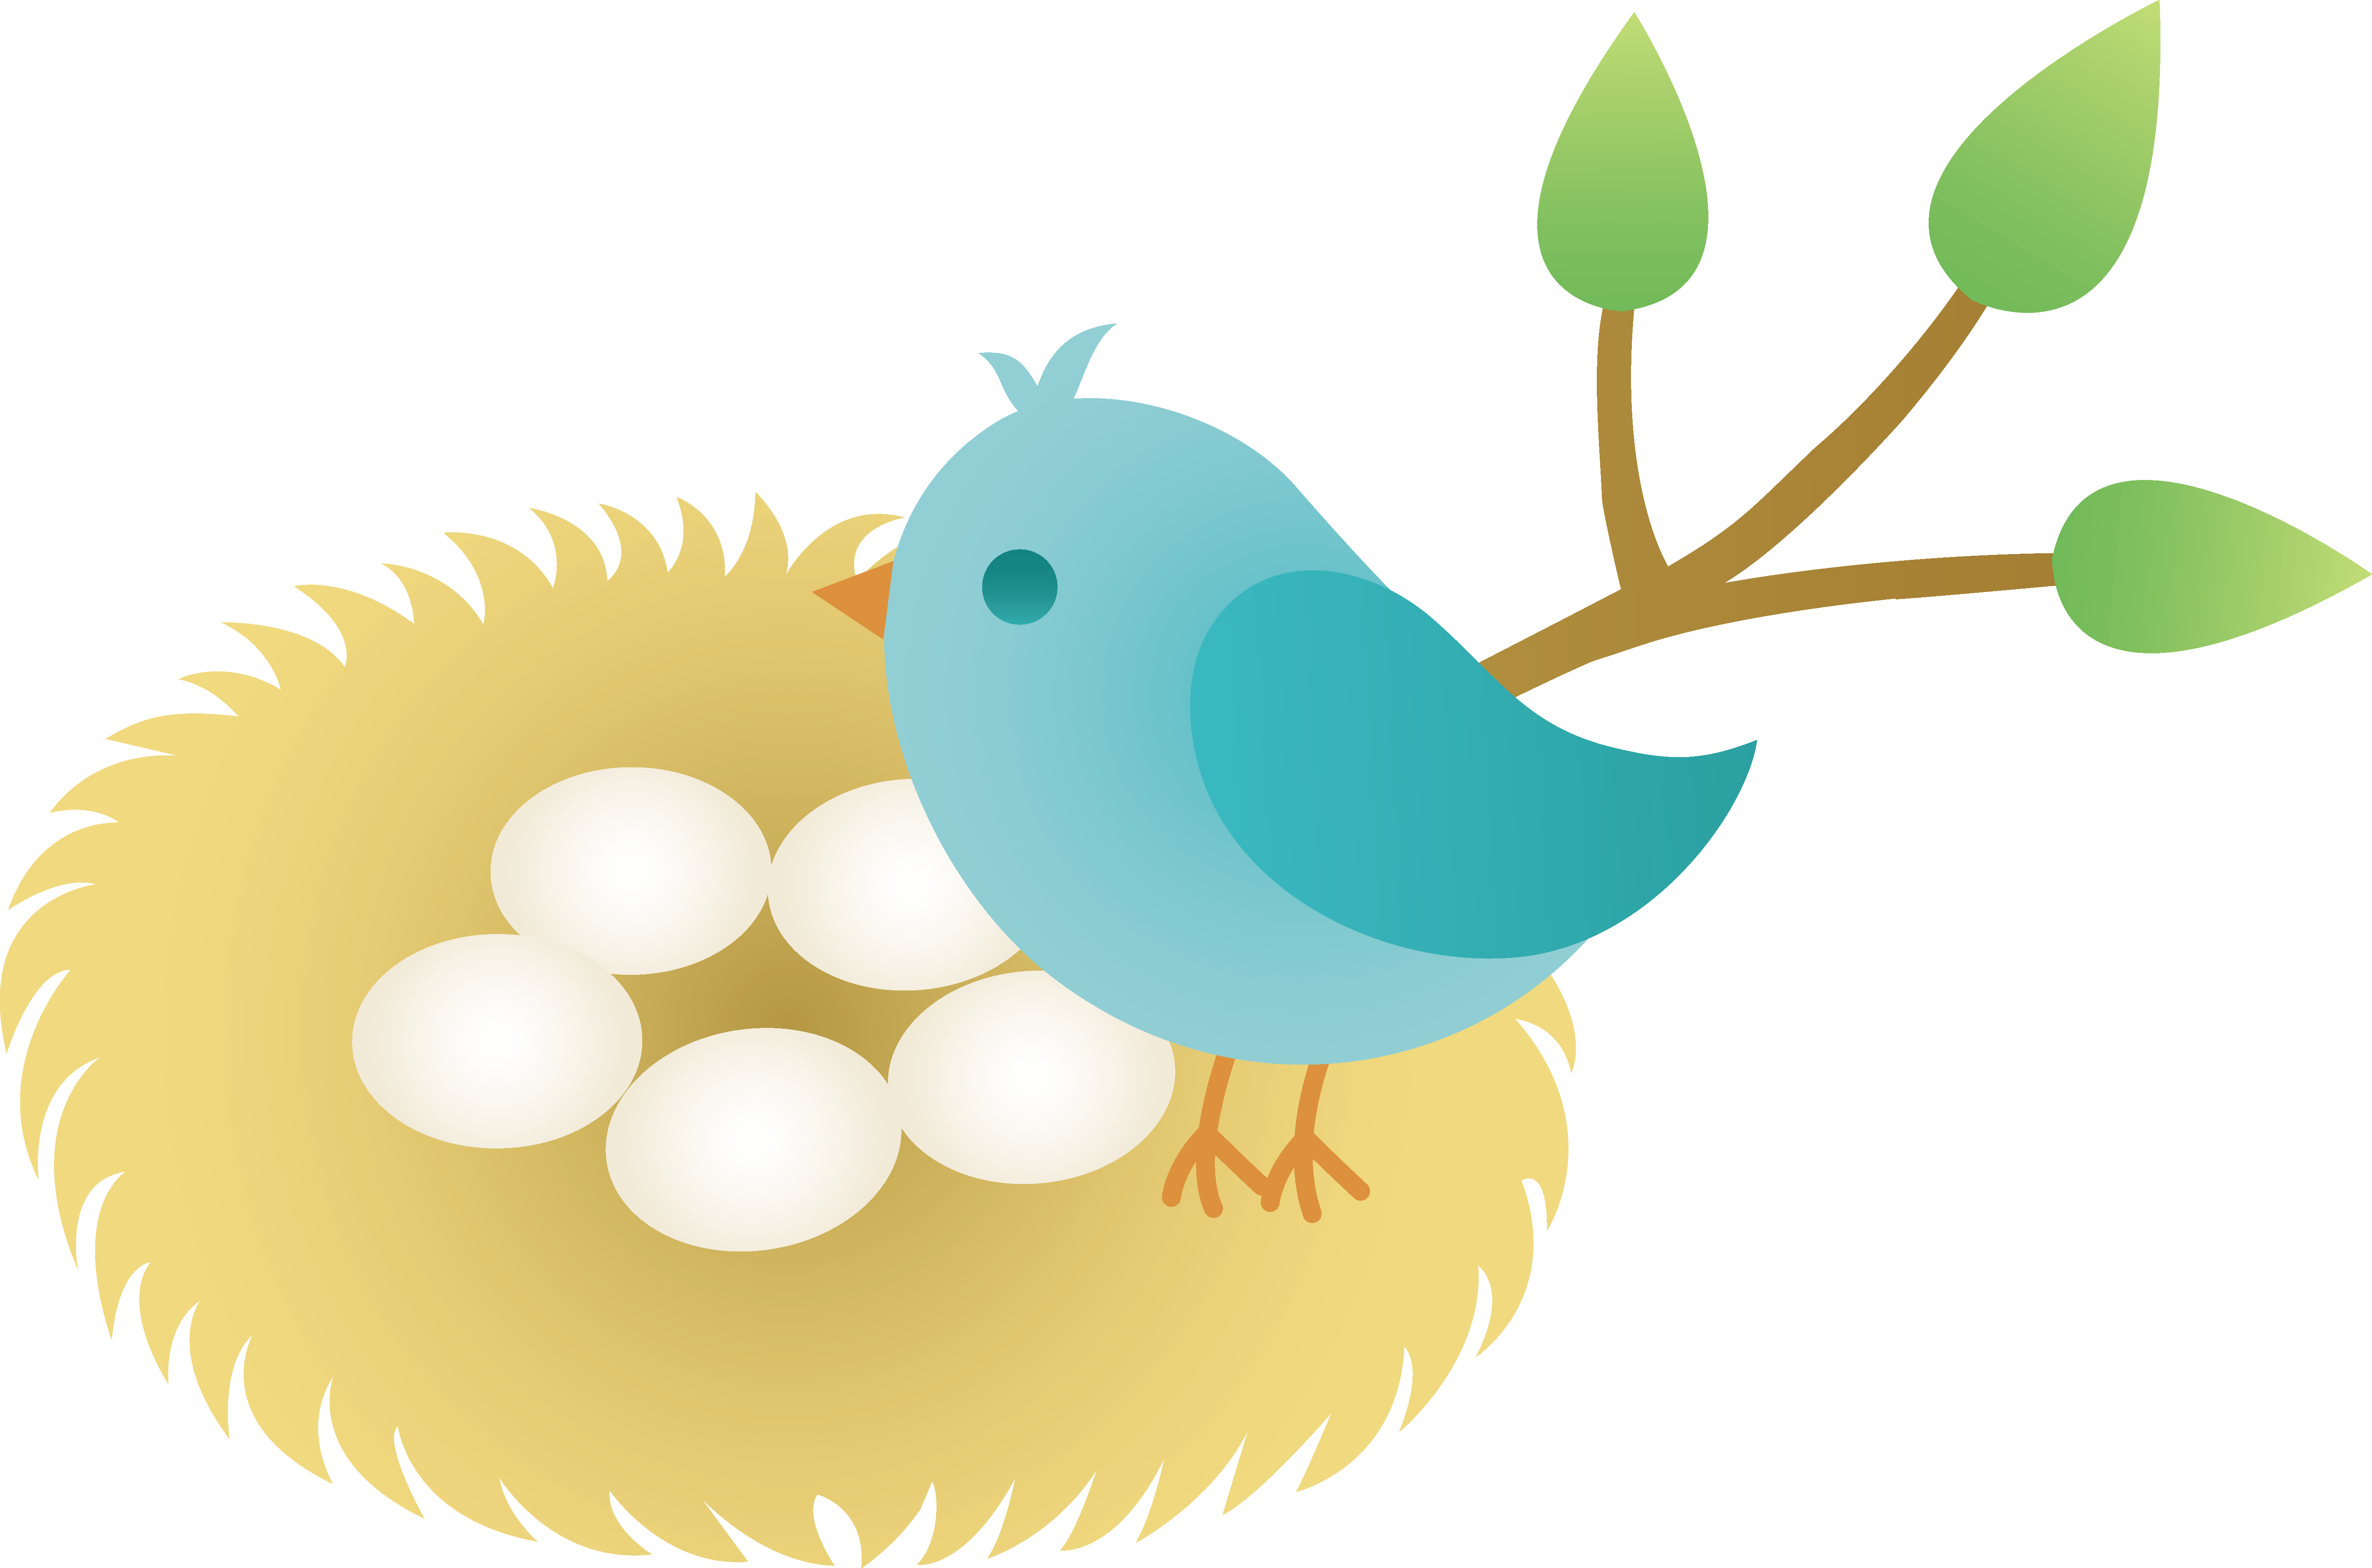 Nest clipart bird's nest. Cartoon bird clip art